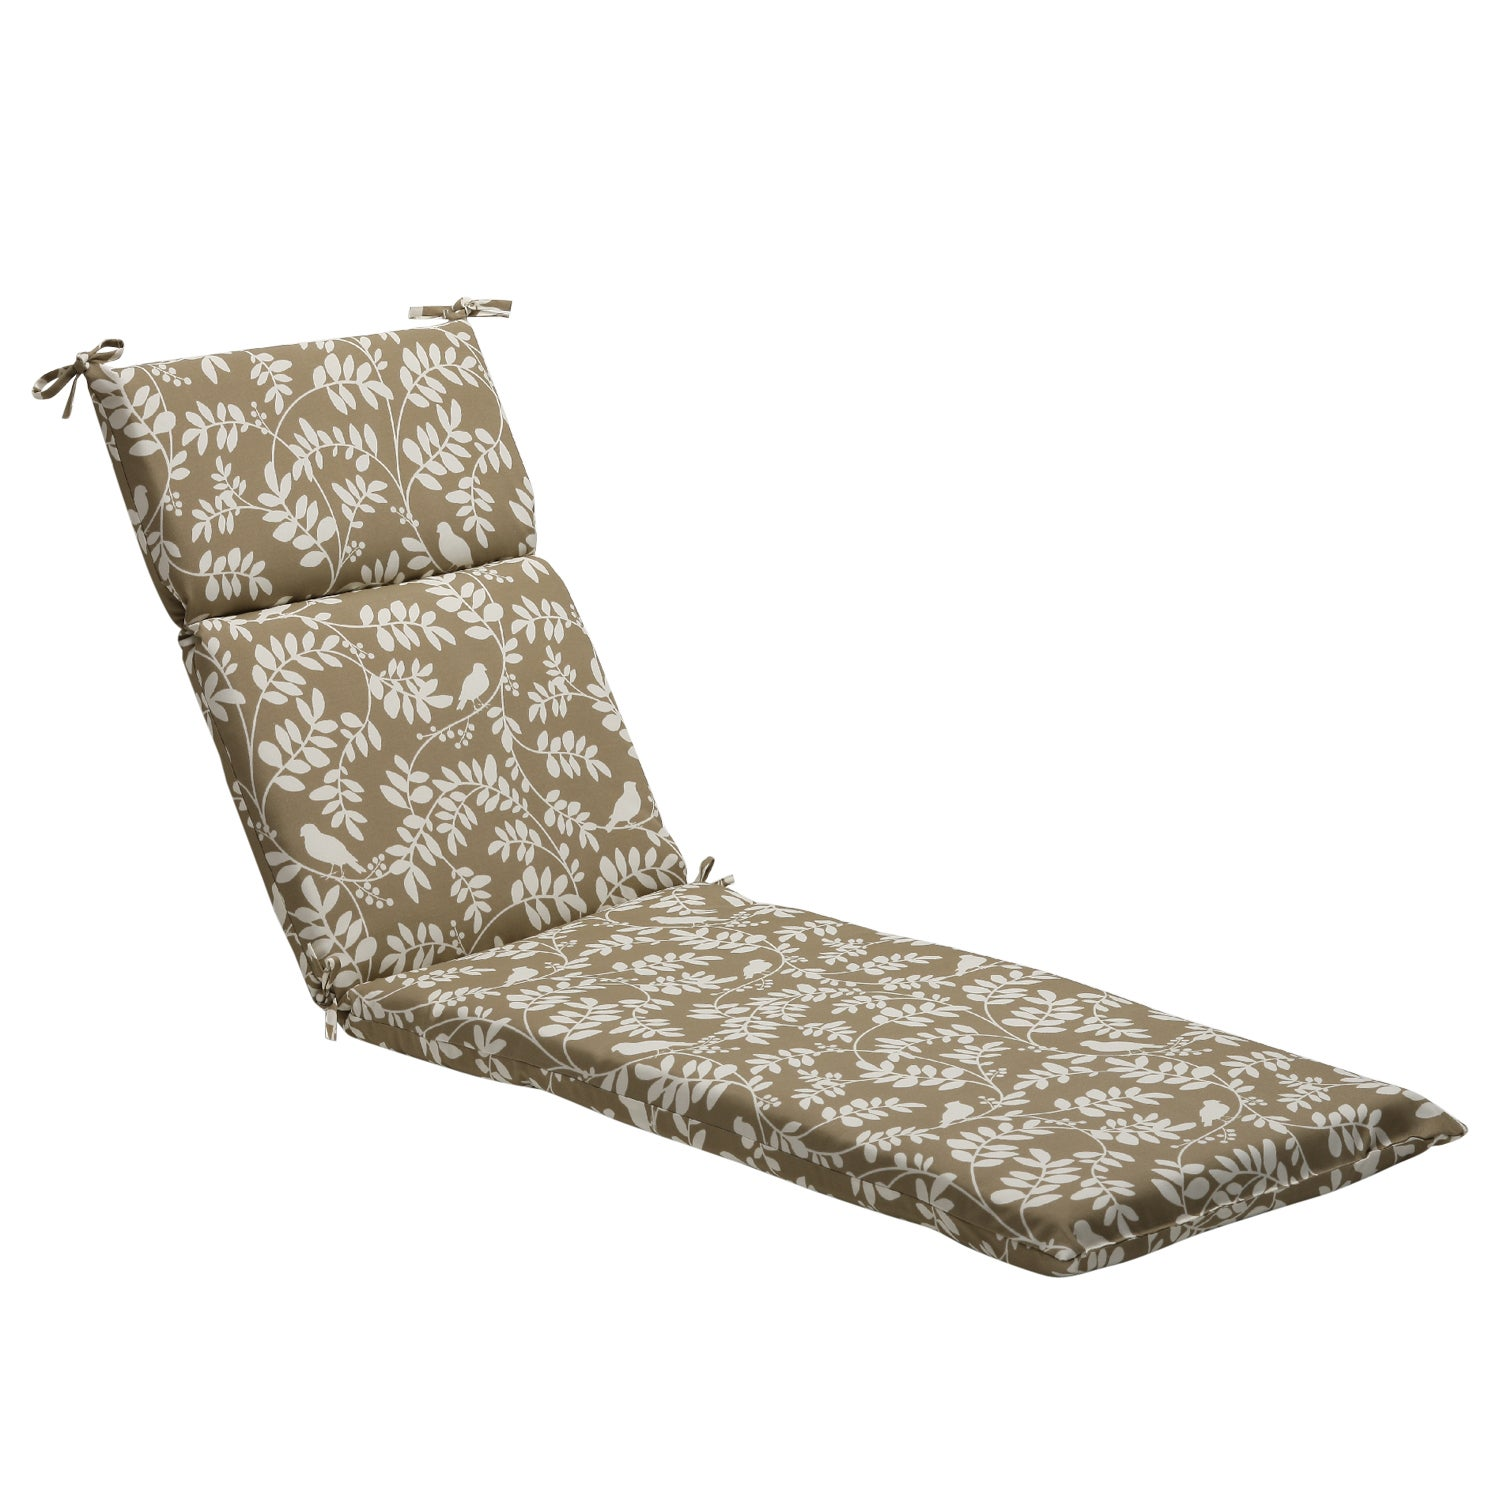 Pillow Perfect Taupe Floral Outdoor Chaise Lounge Cushion